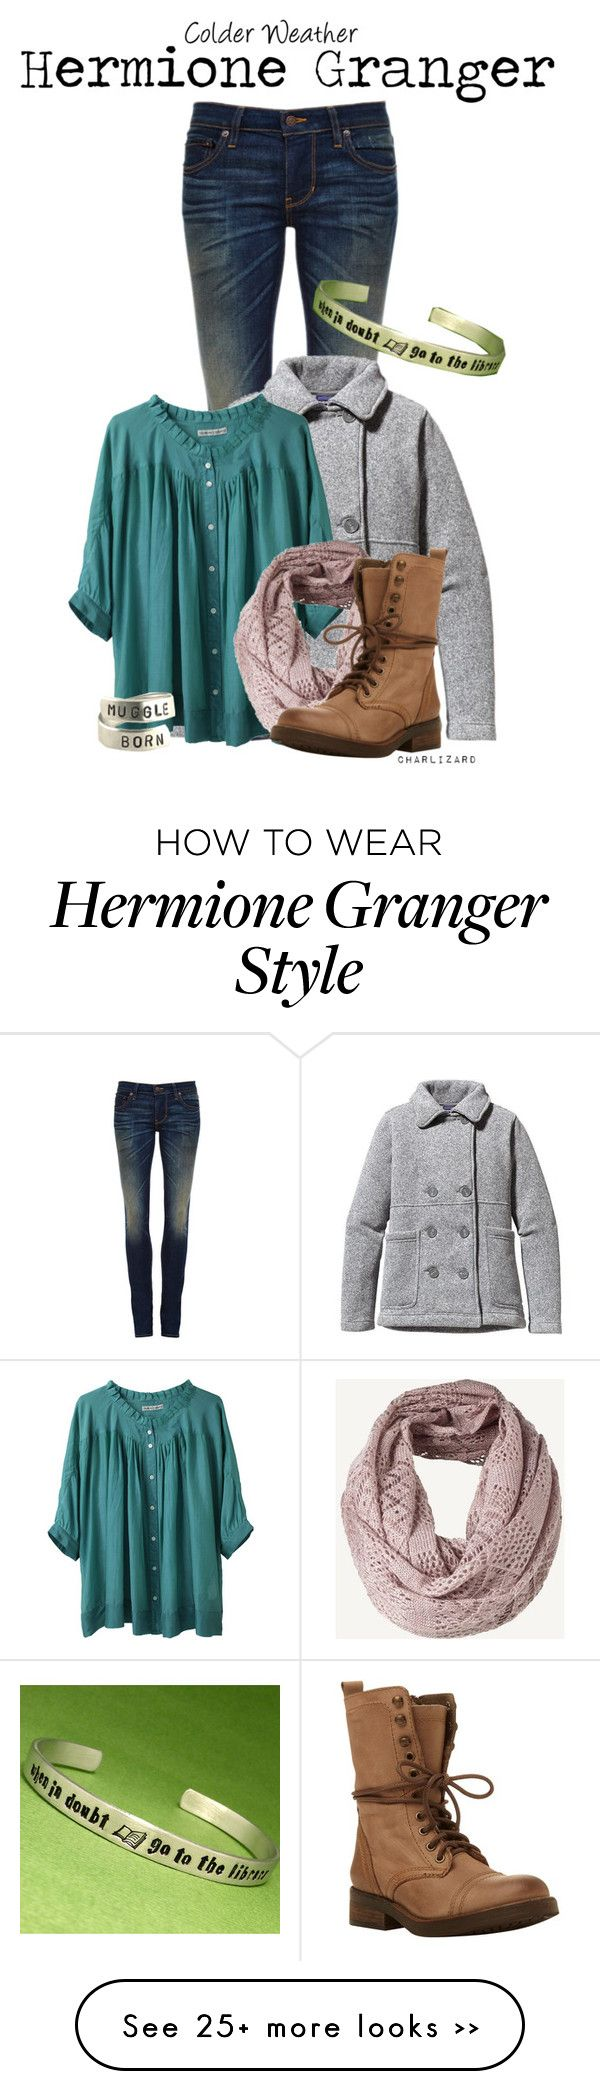 """Hermione Granger"" by charlizard on Polyvore"